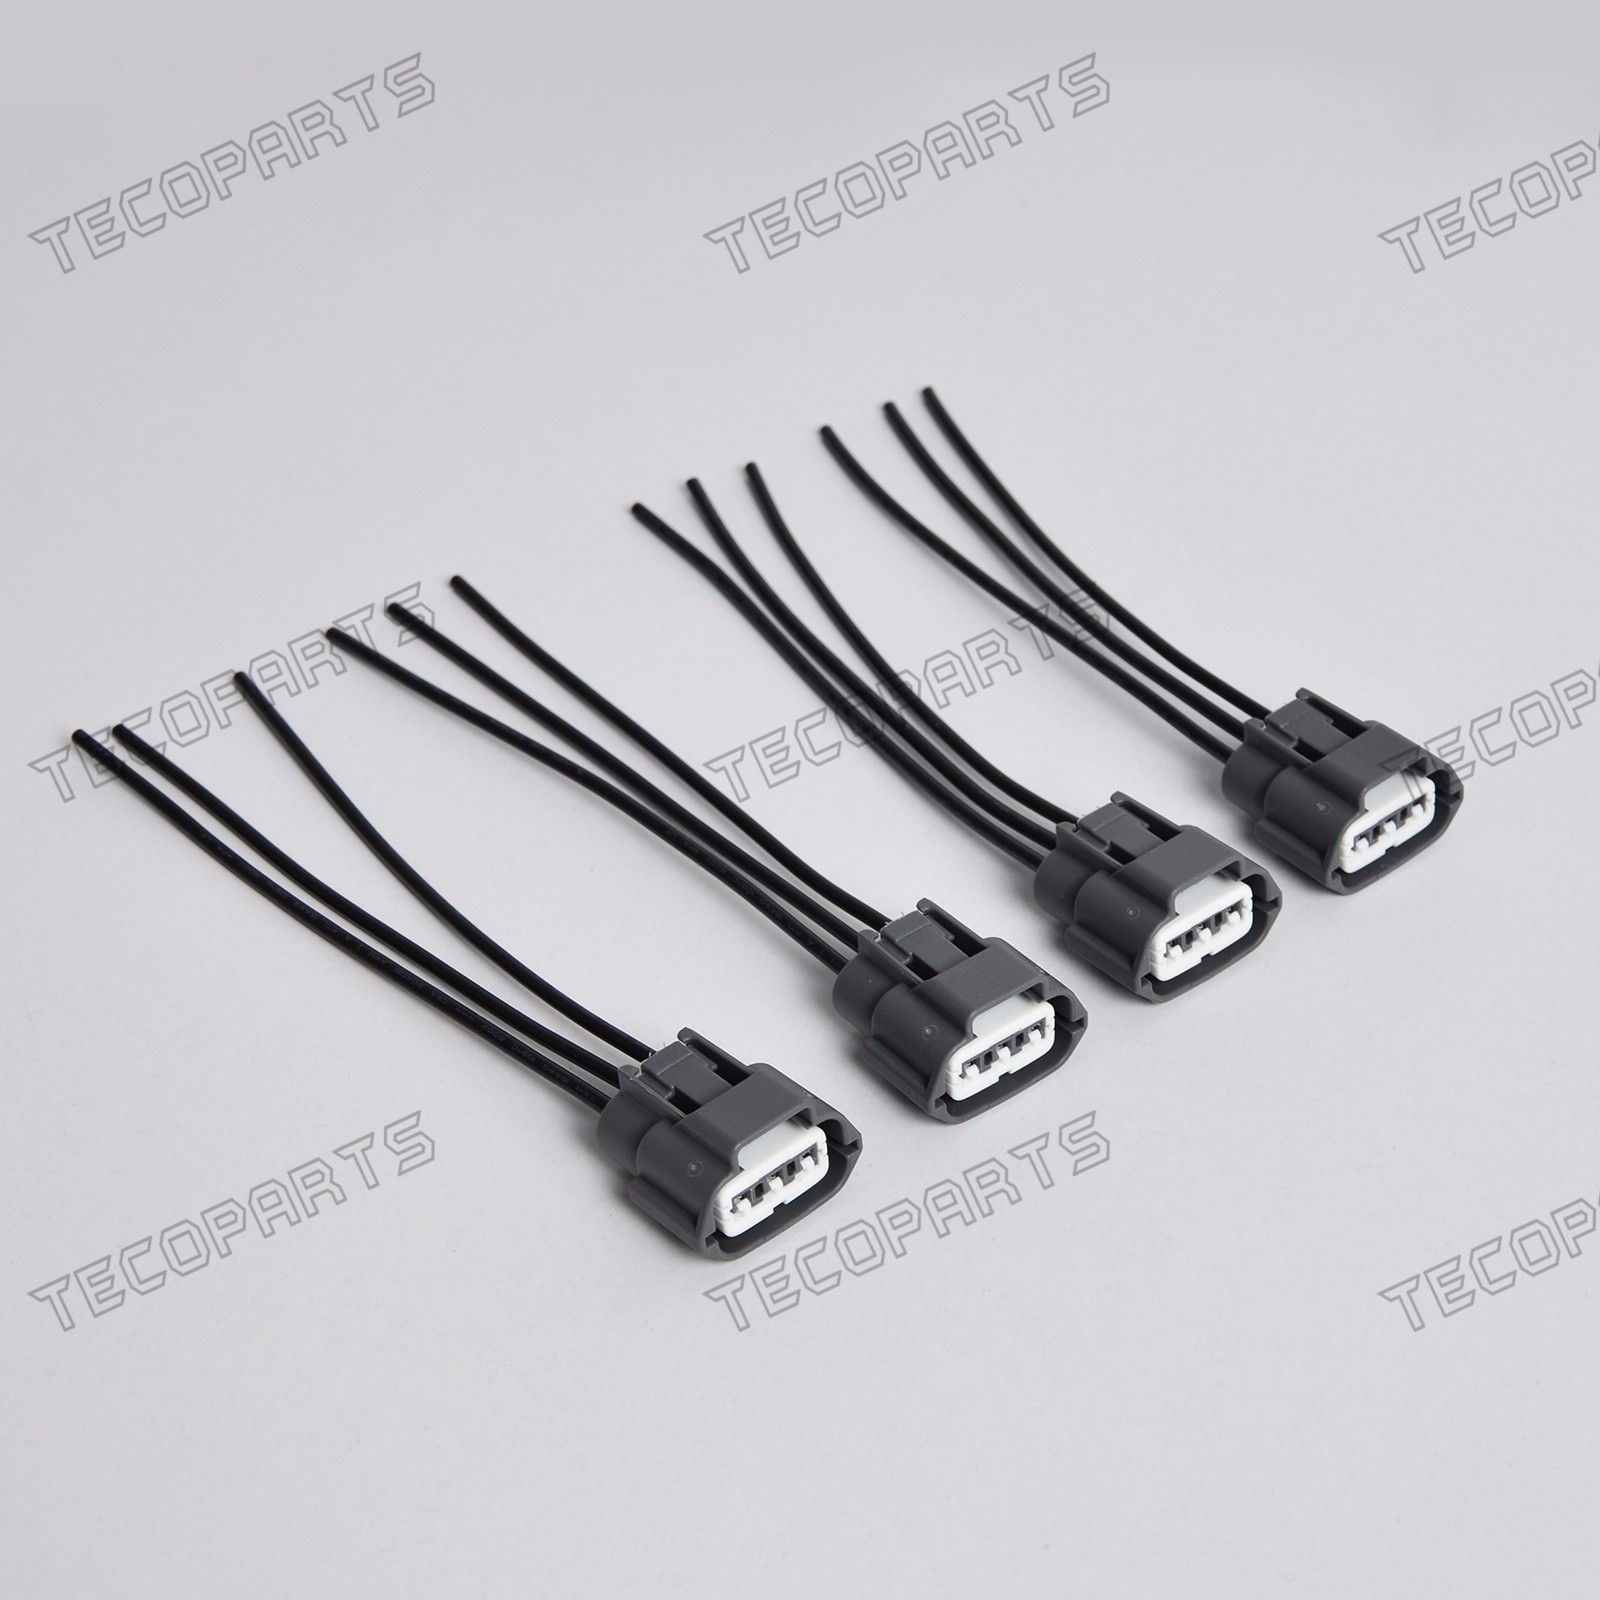 hight resolution of details about 4 pieces ignition coil pack wiring harness connector for nissan altima sentra